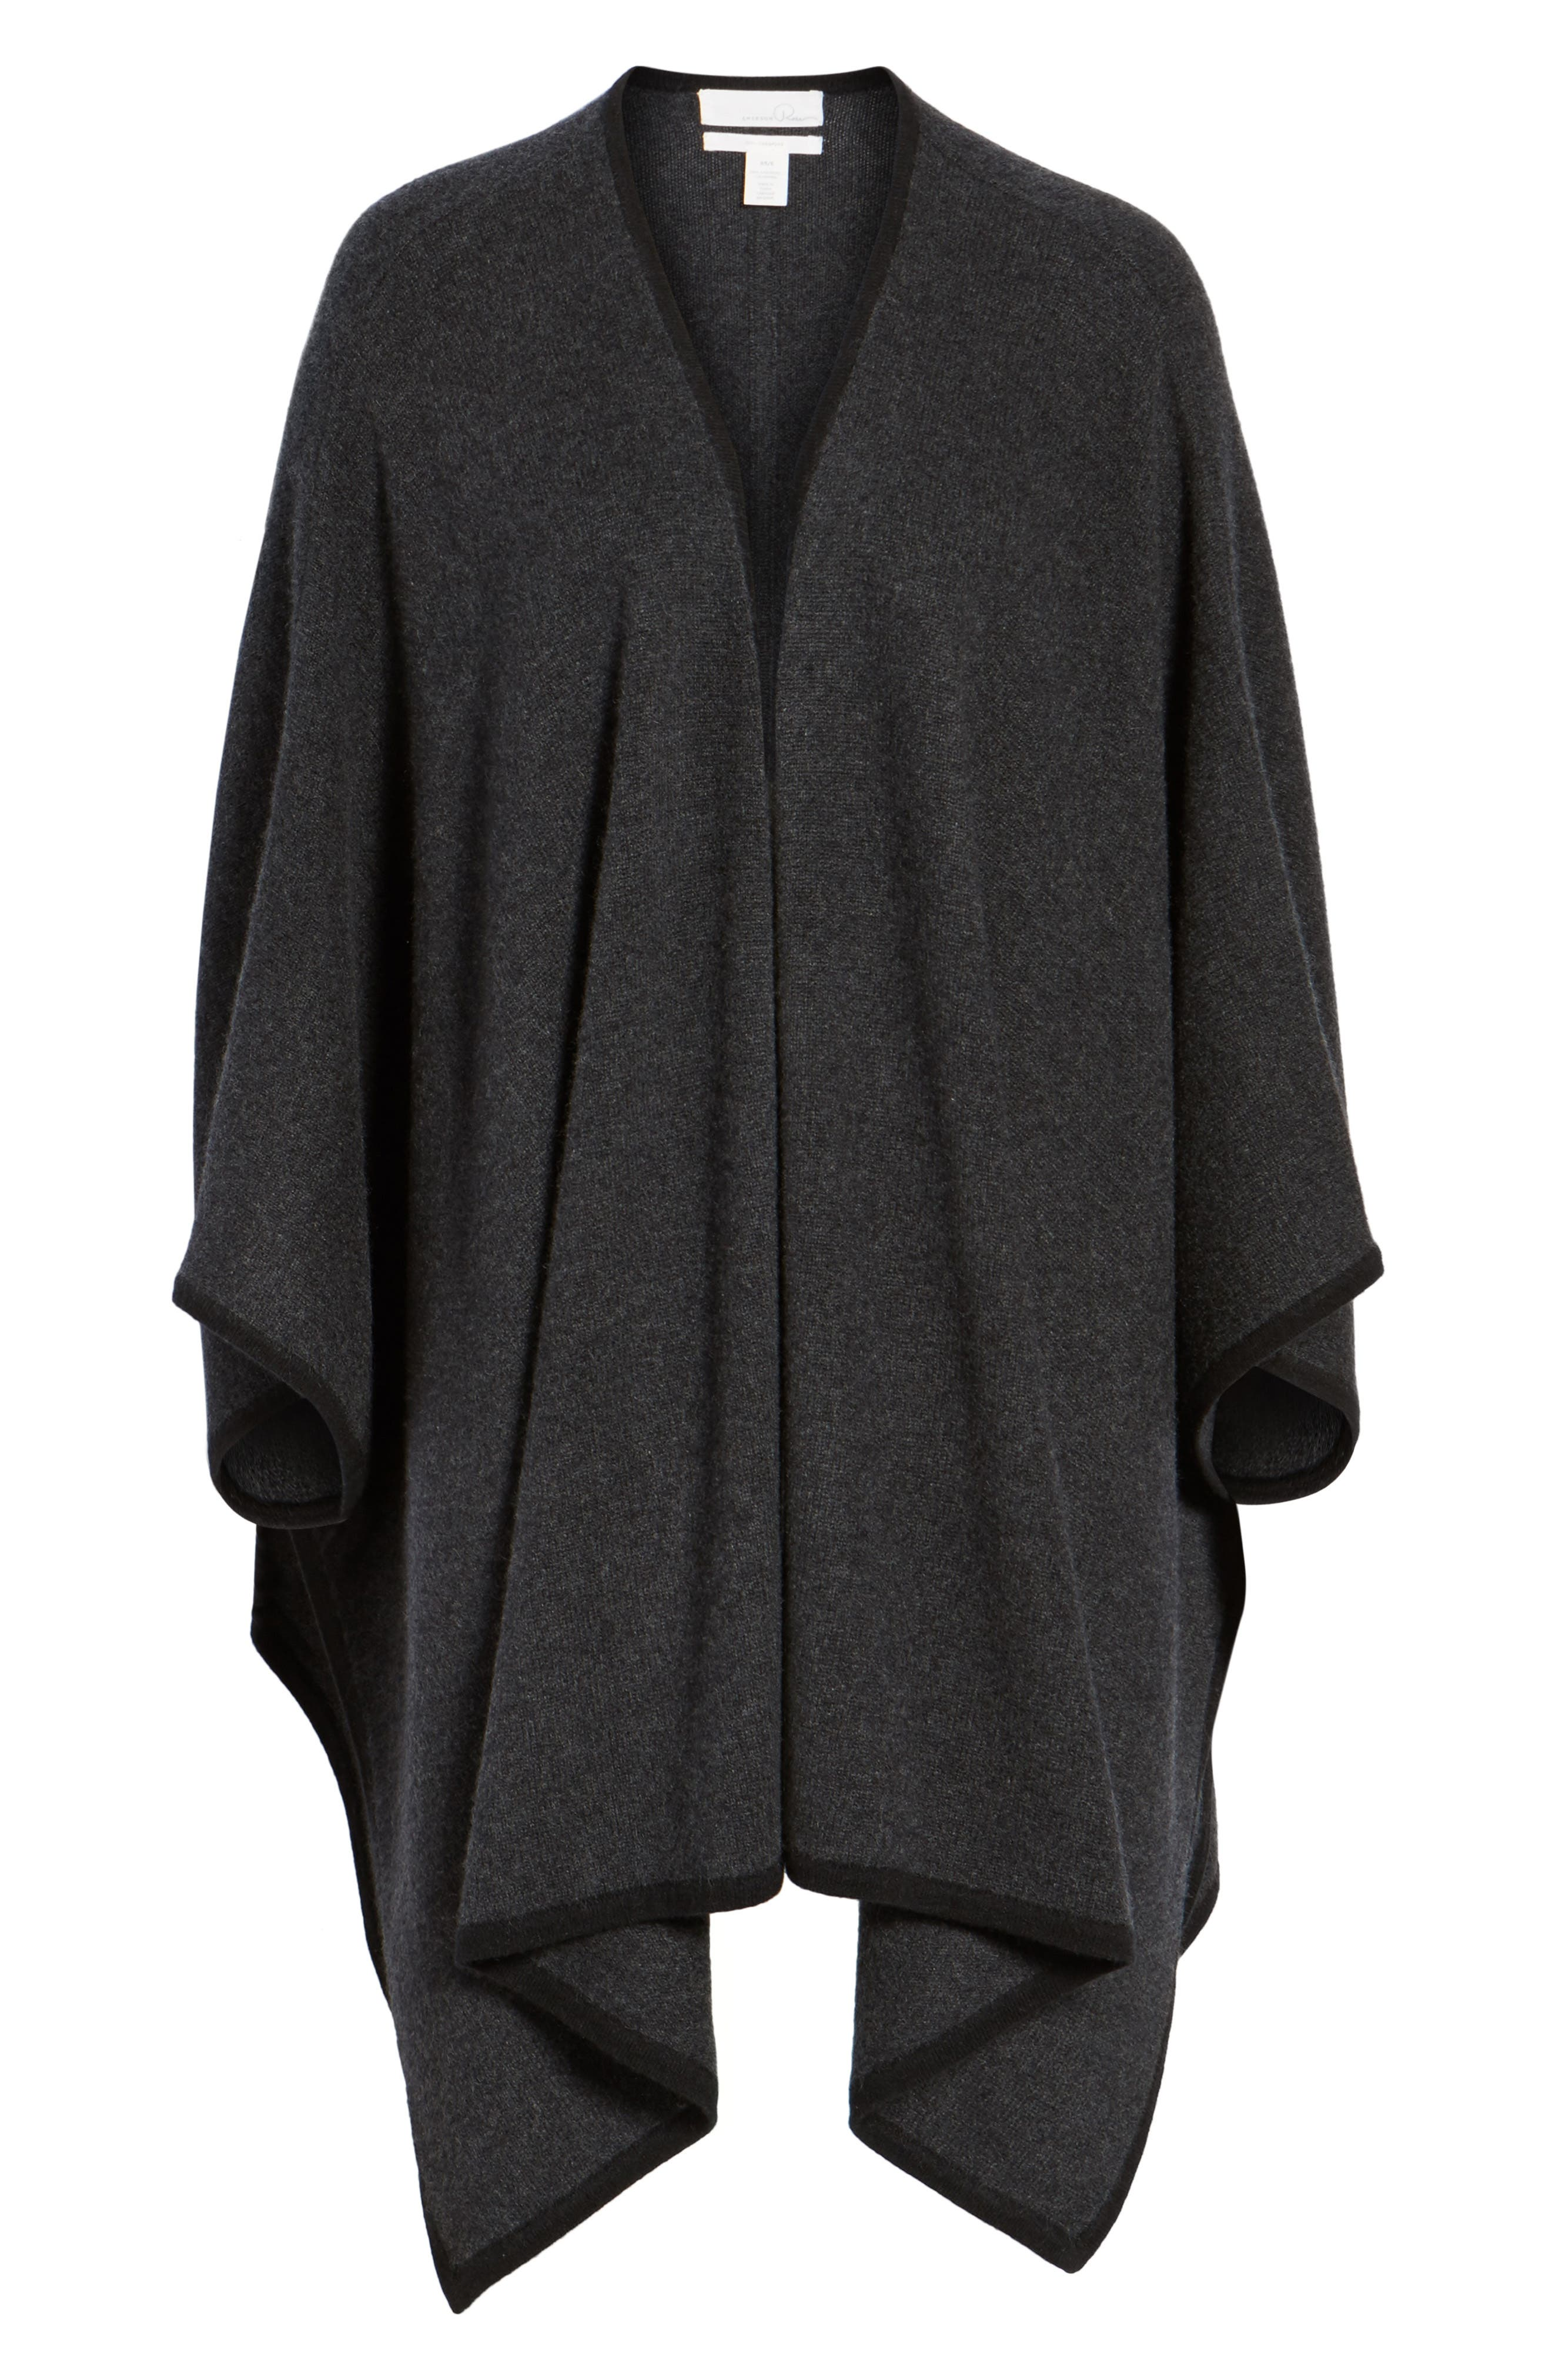 Cashmere Cape,                             Alternate thumbnail 6, color,                             Grey Dark Charcoal Heather